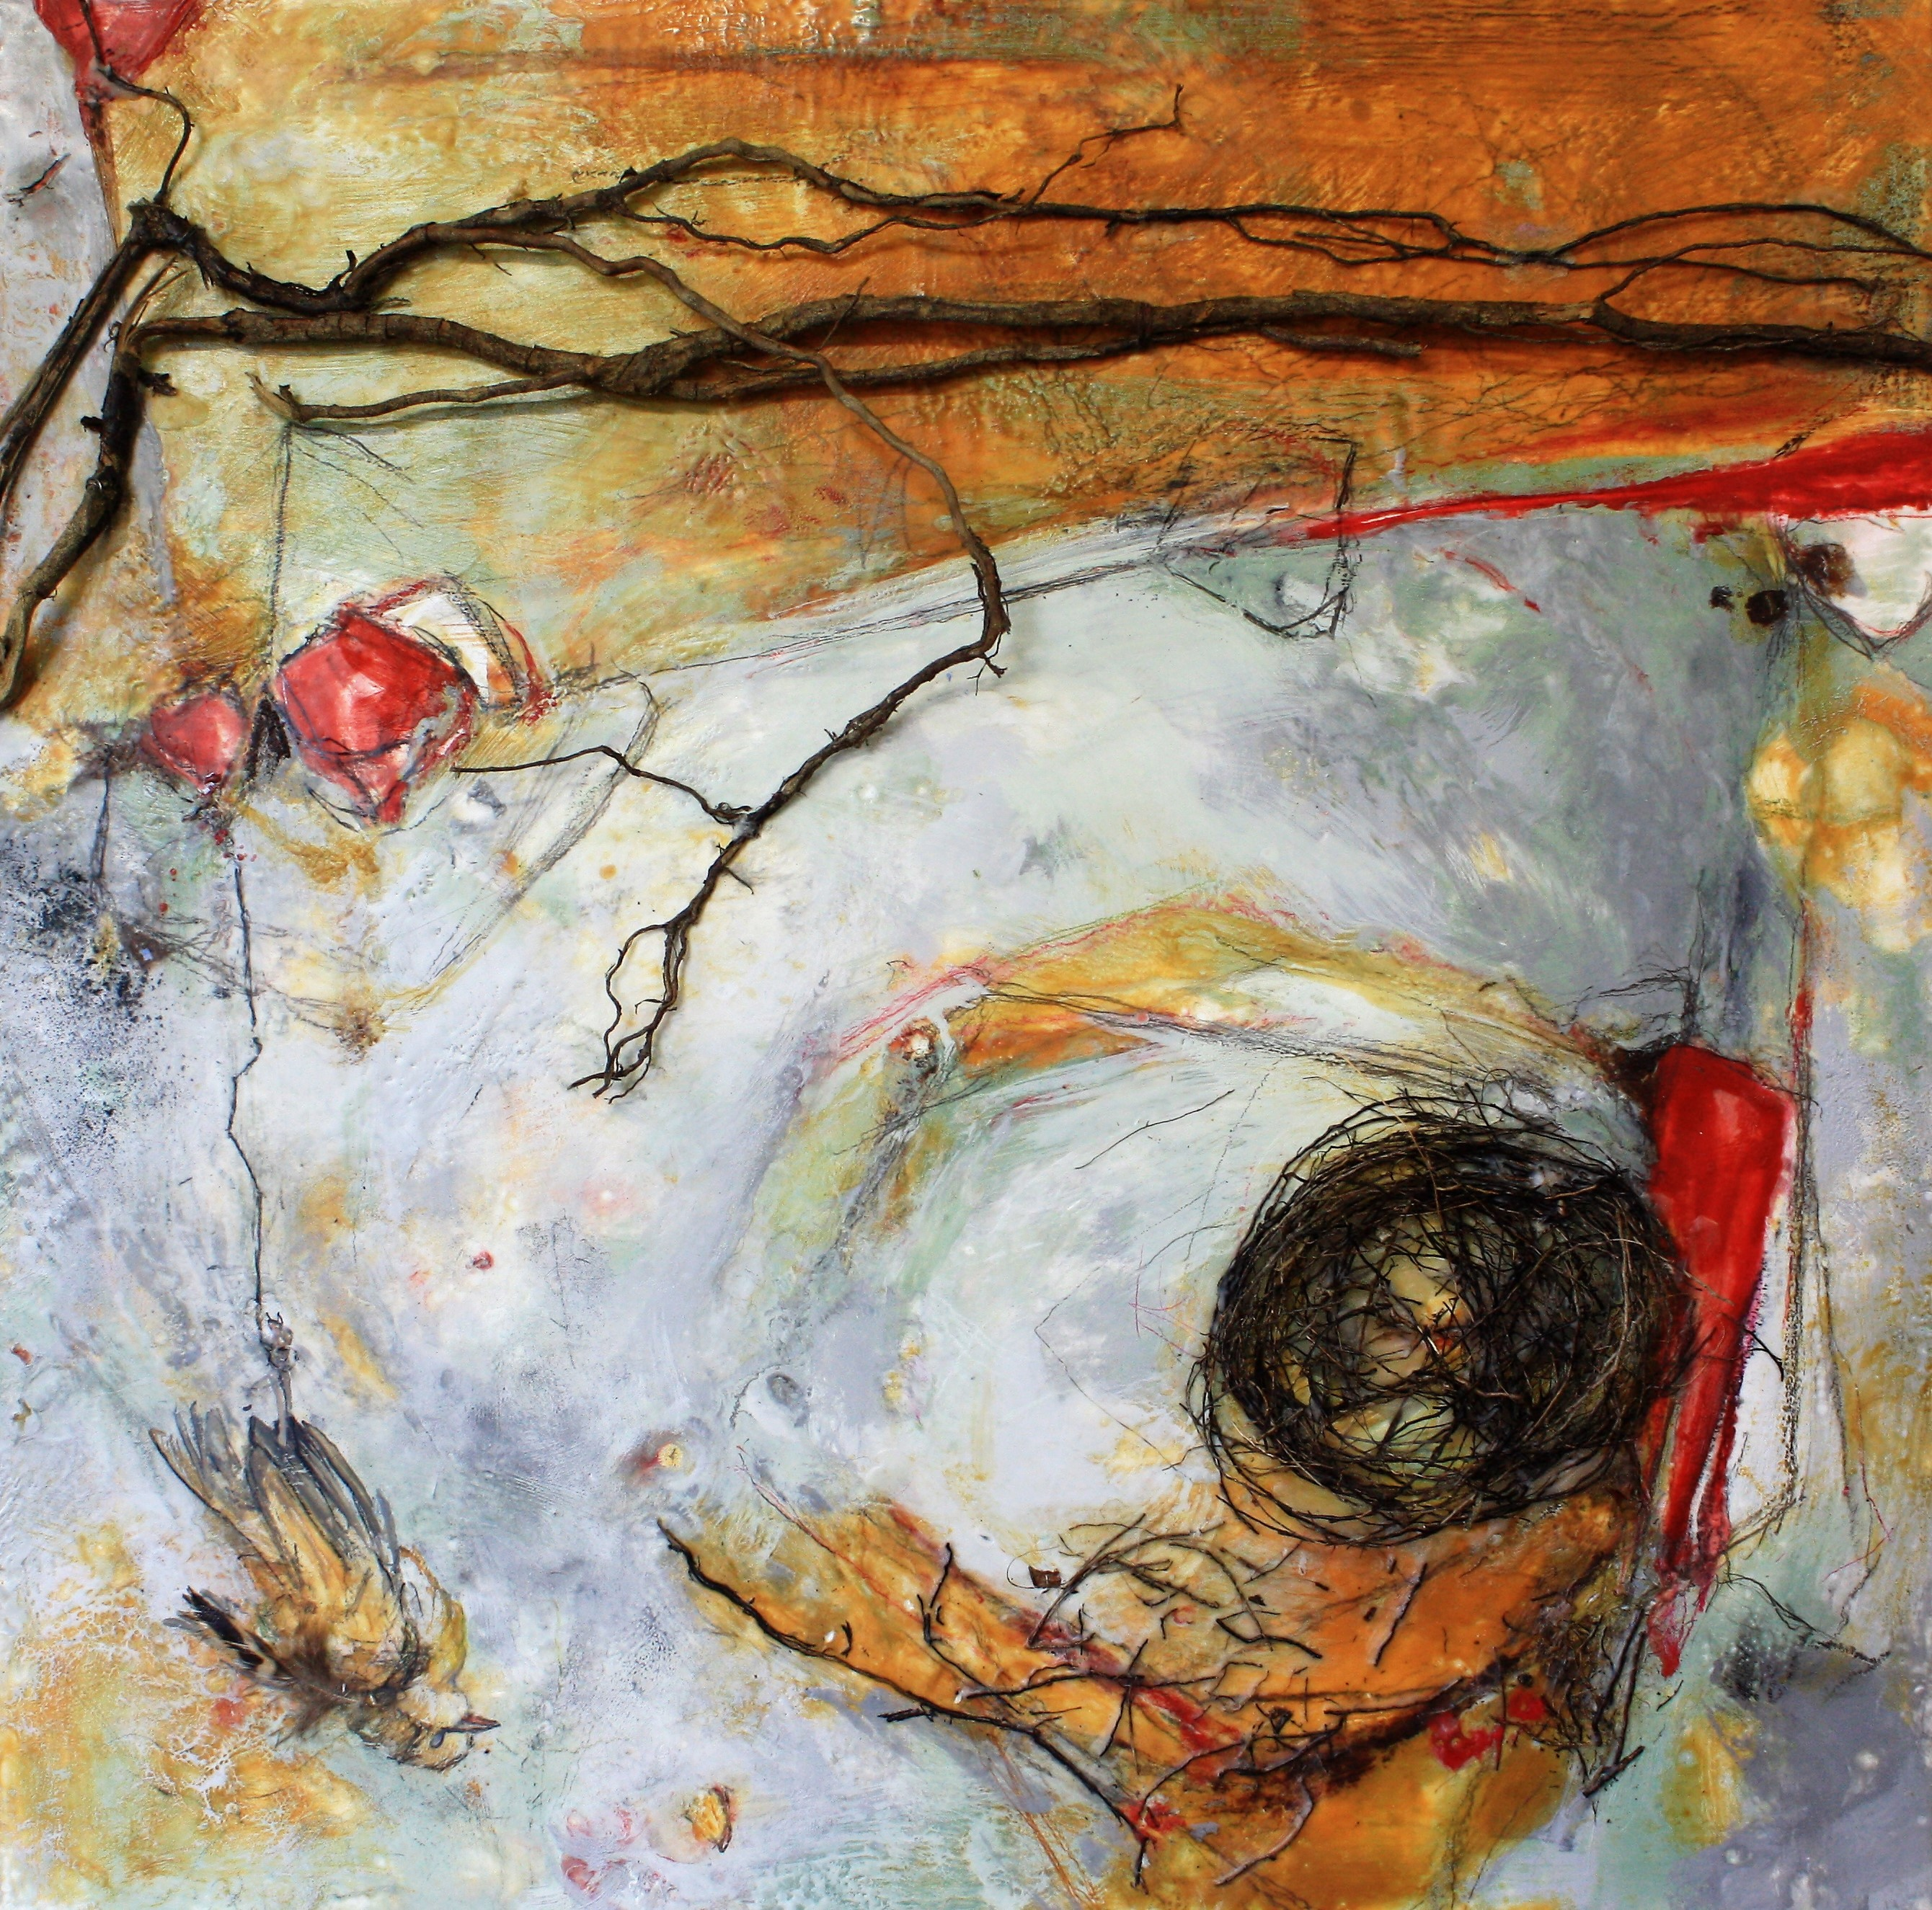 Painting, Encaustic, Abstract, Landscape